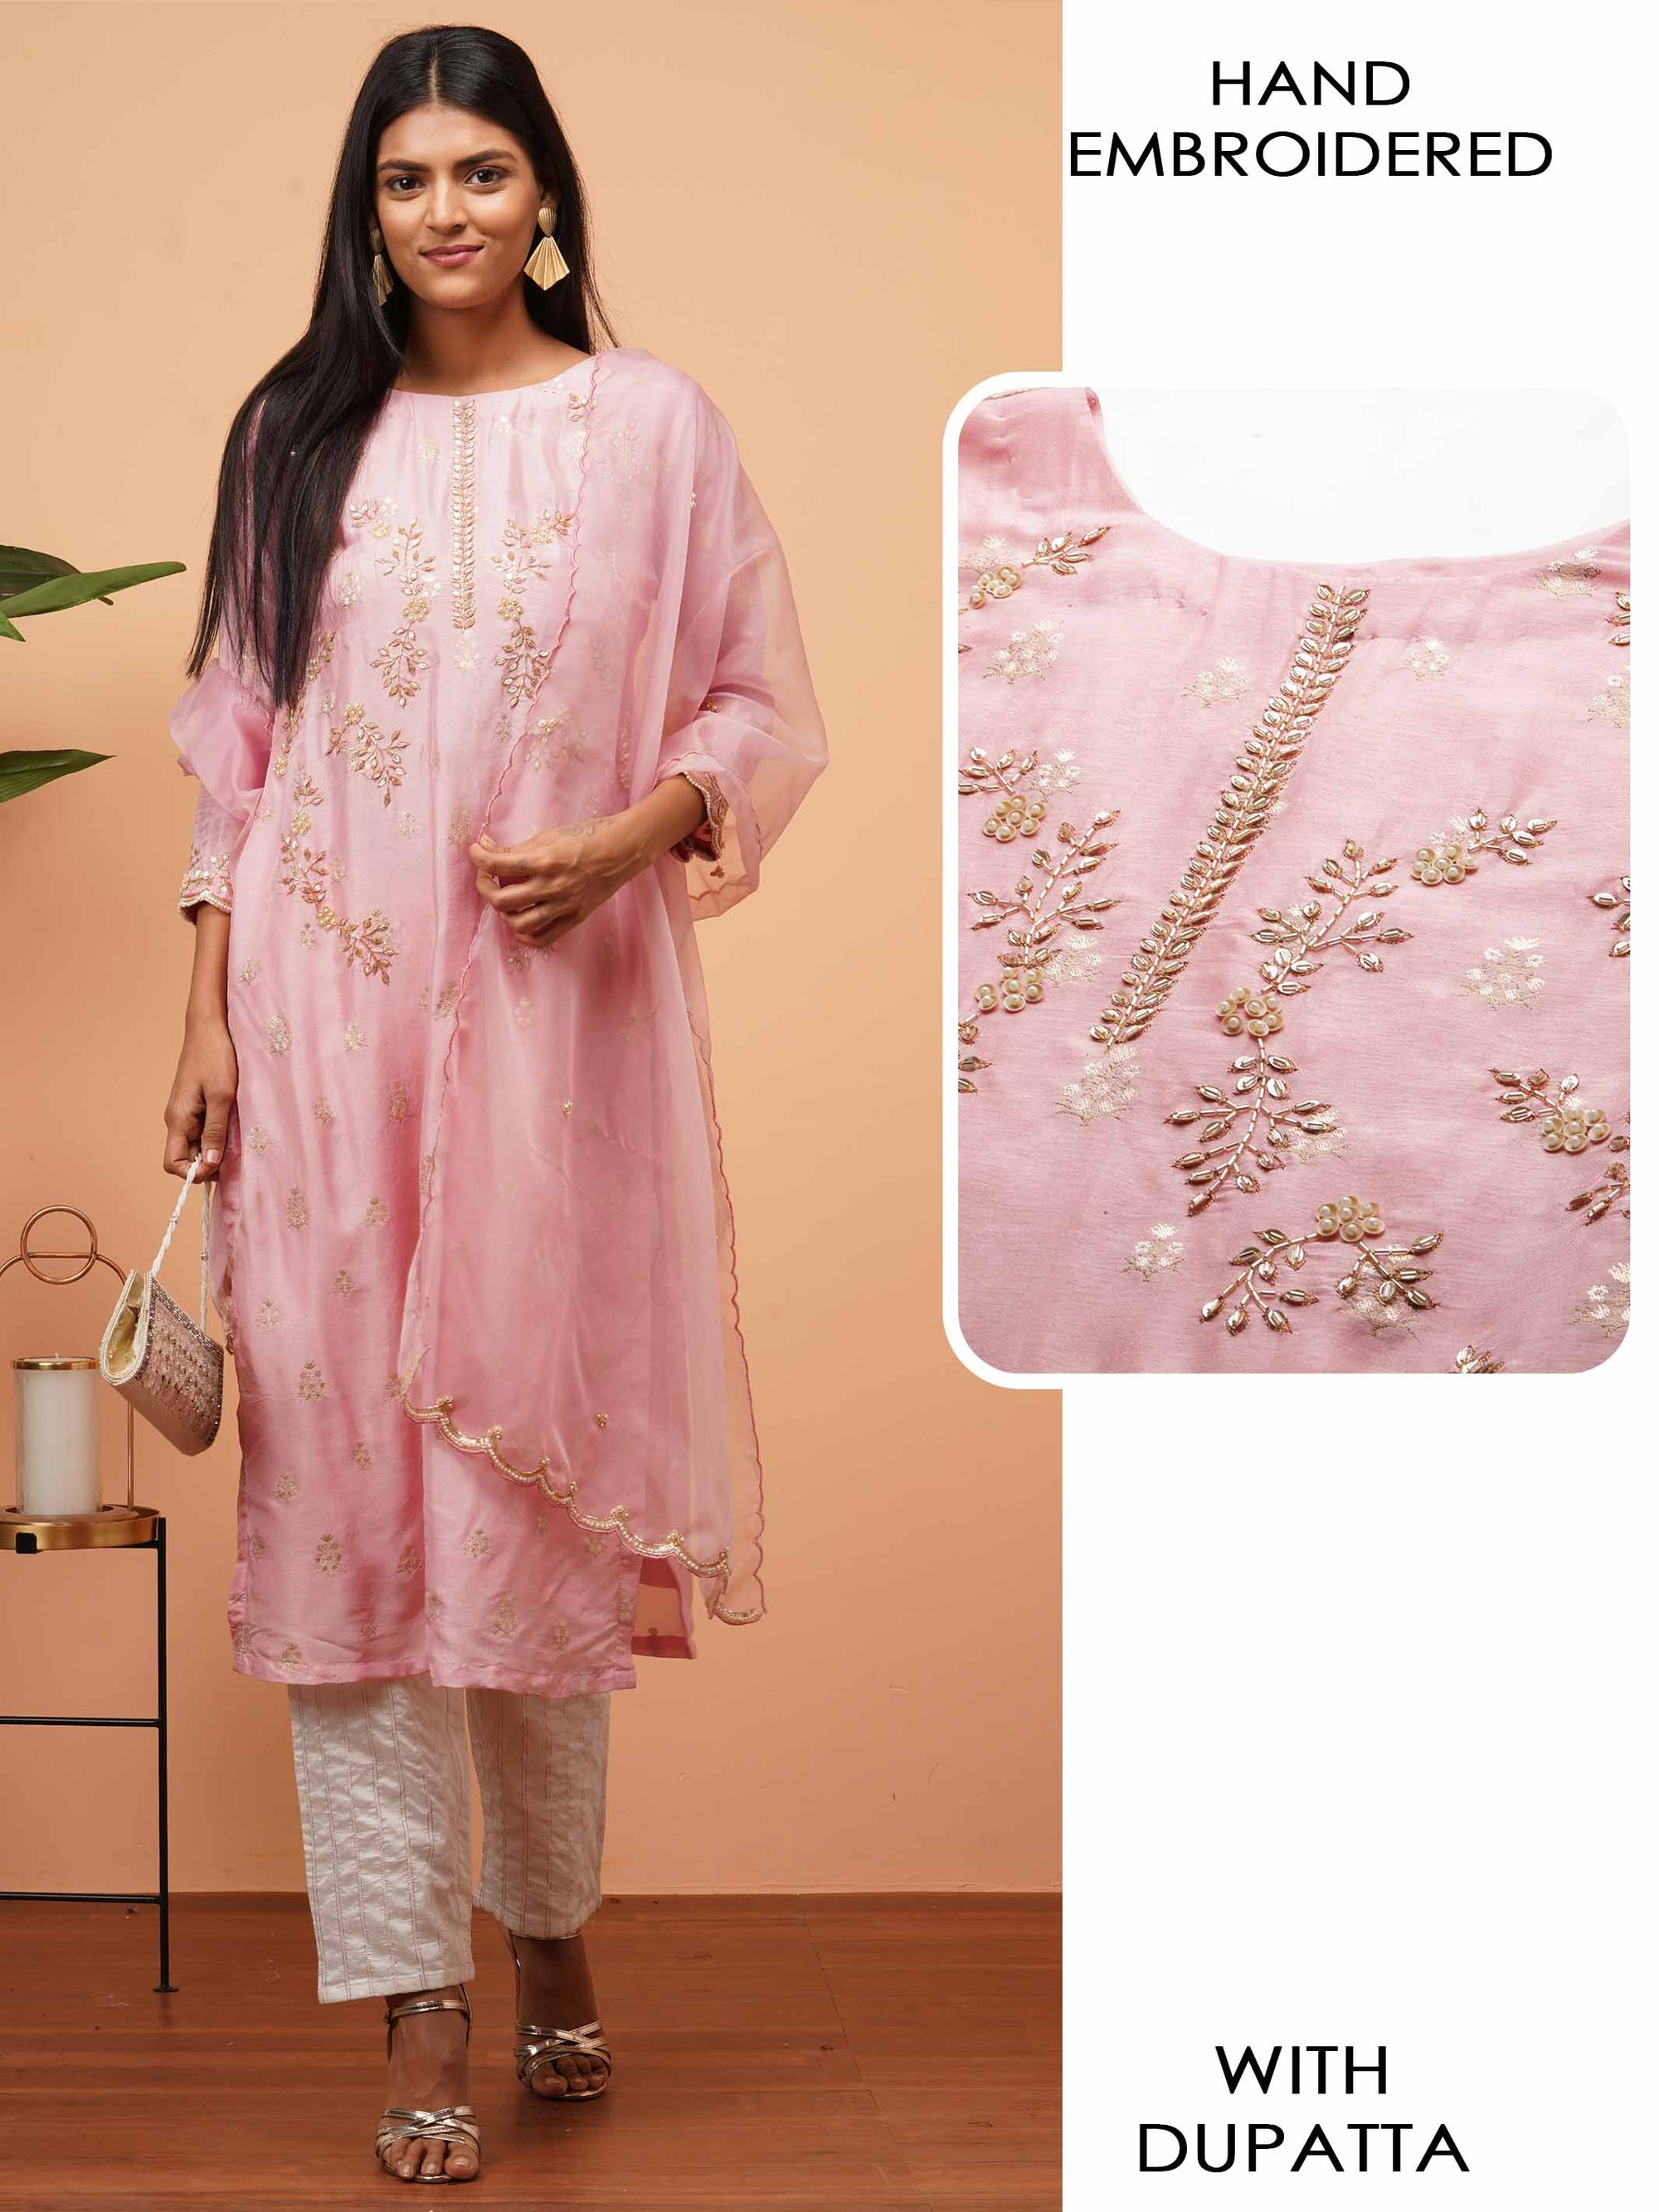 Woven & Hand Embroidered Straight Kurta with Hand Embroidered Scallop Dupatta - Pastel Pink